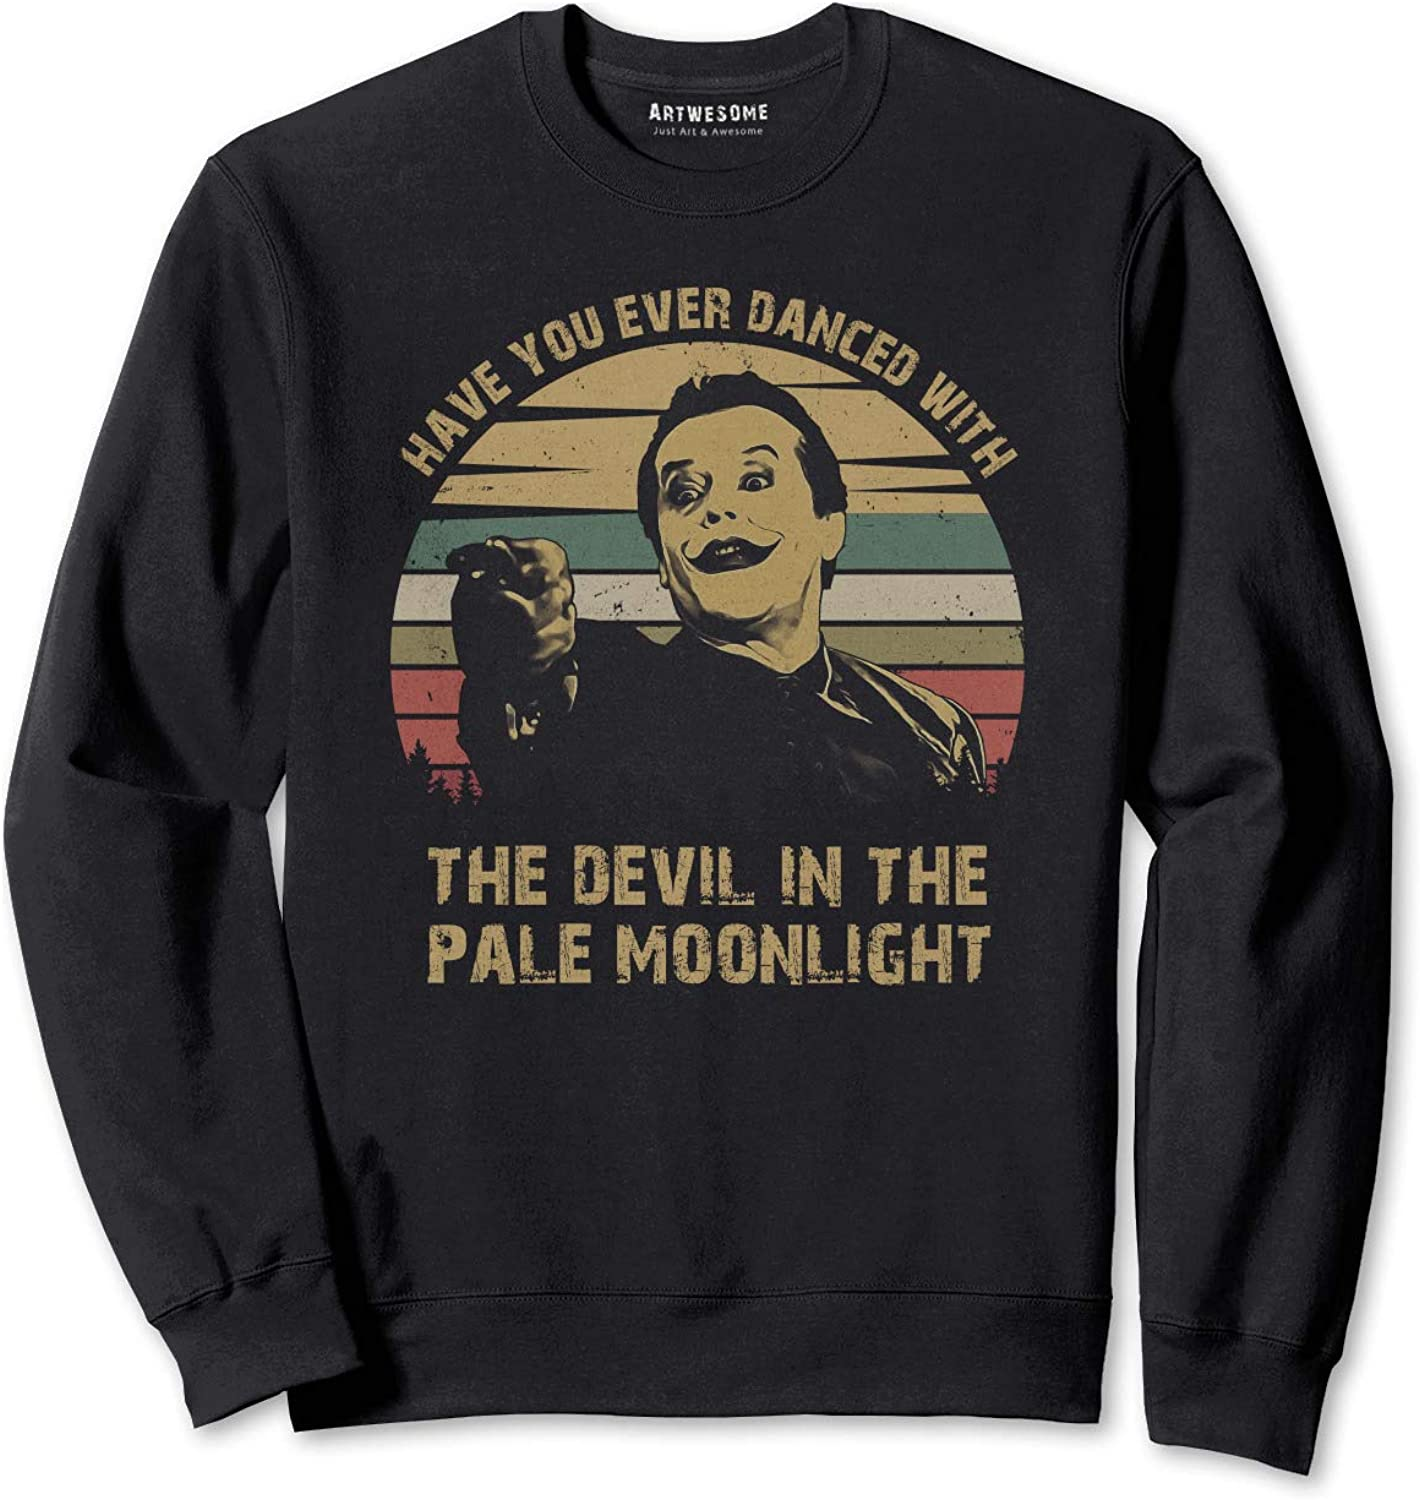 Unisex Have You Ever Danced with The Devil in The Pale Moonlight